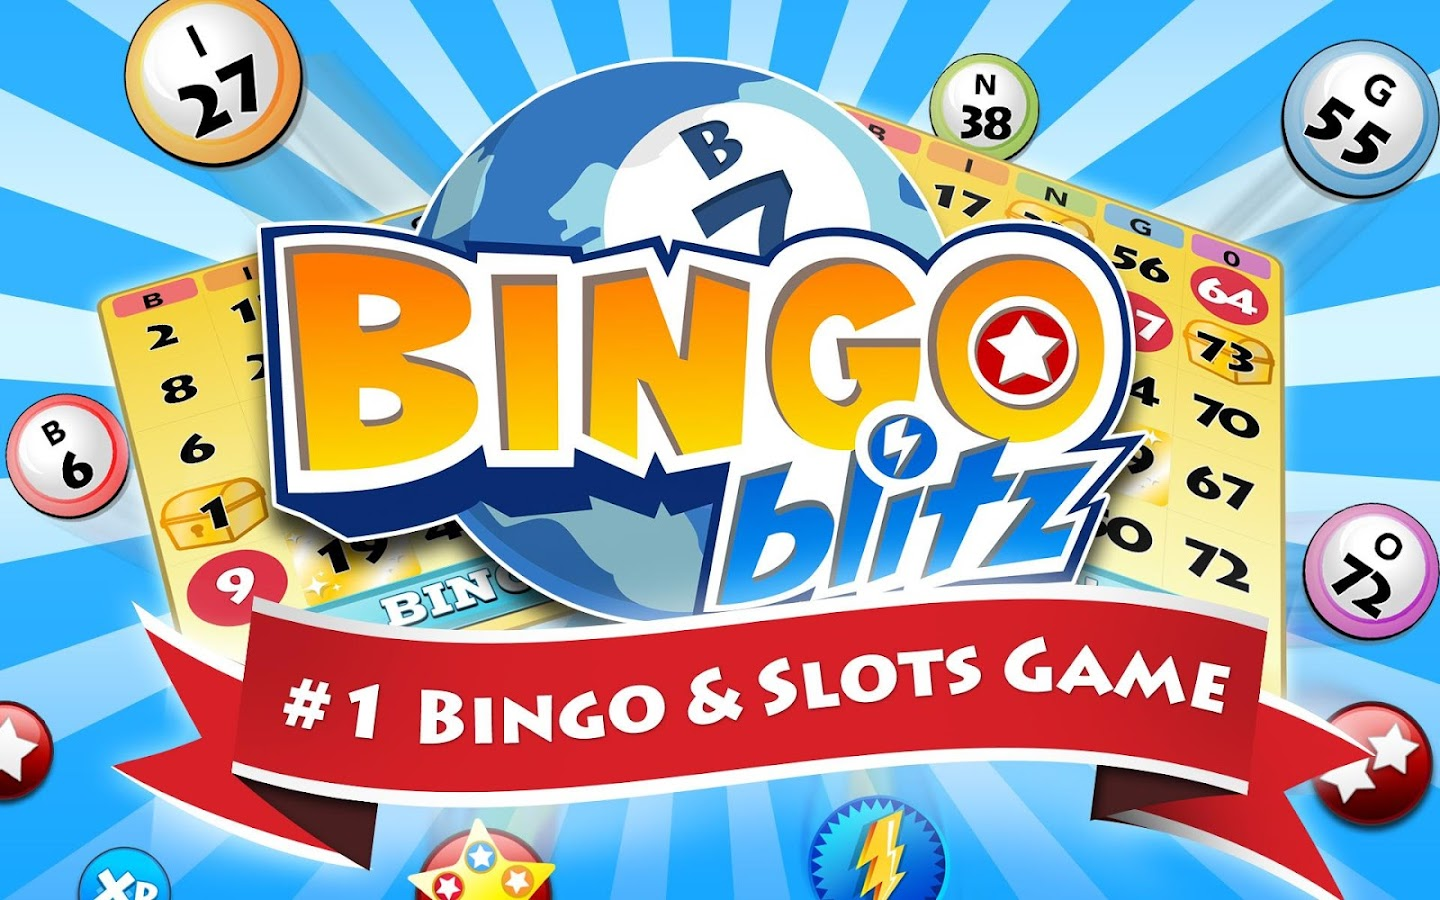 Bingo casino play games online free 16